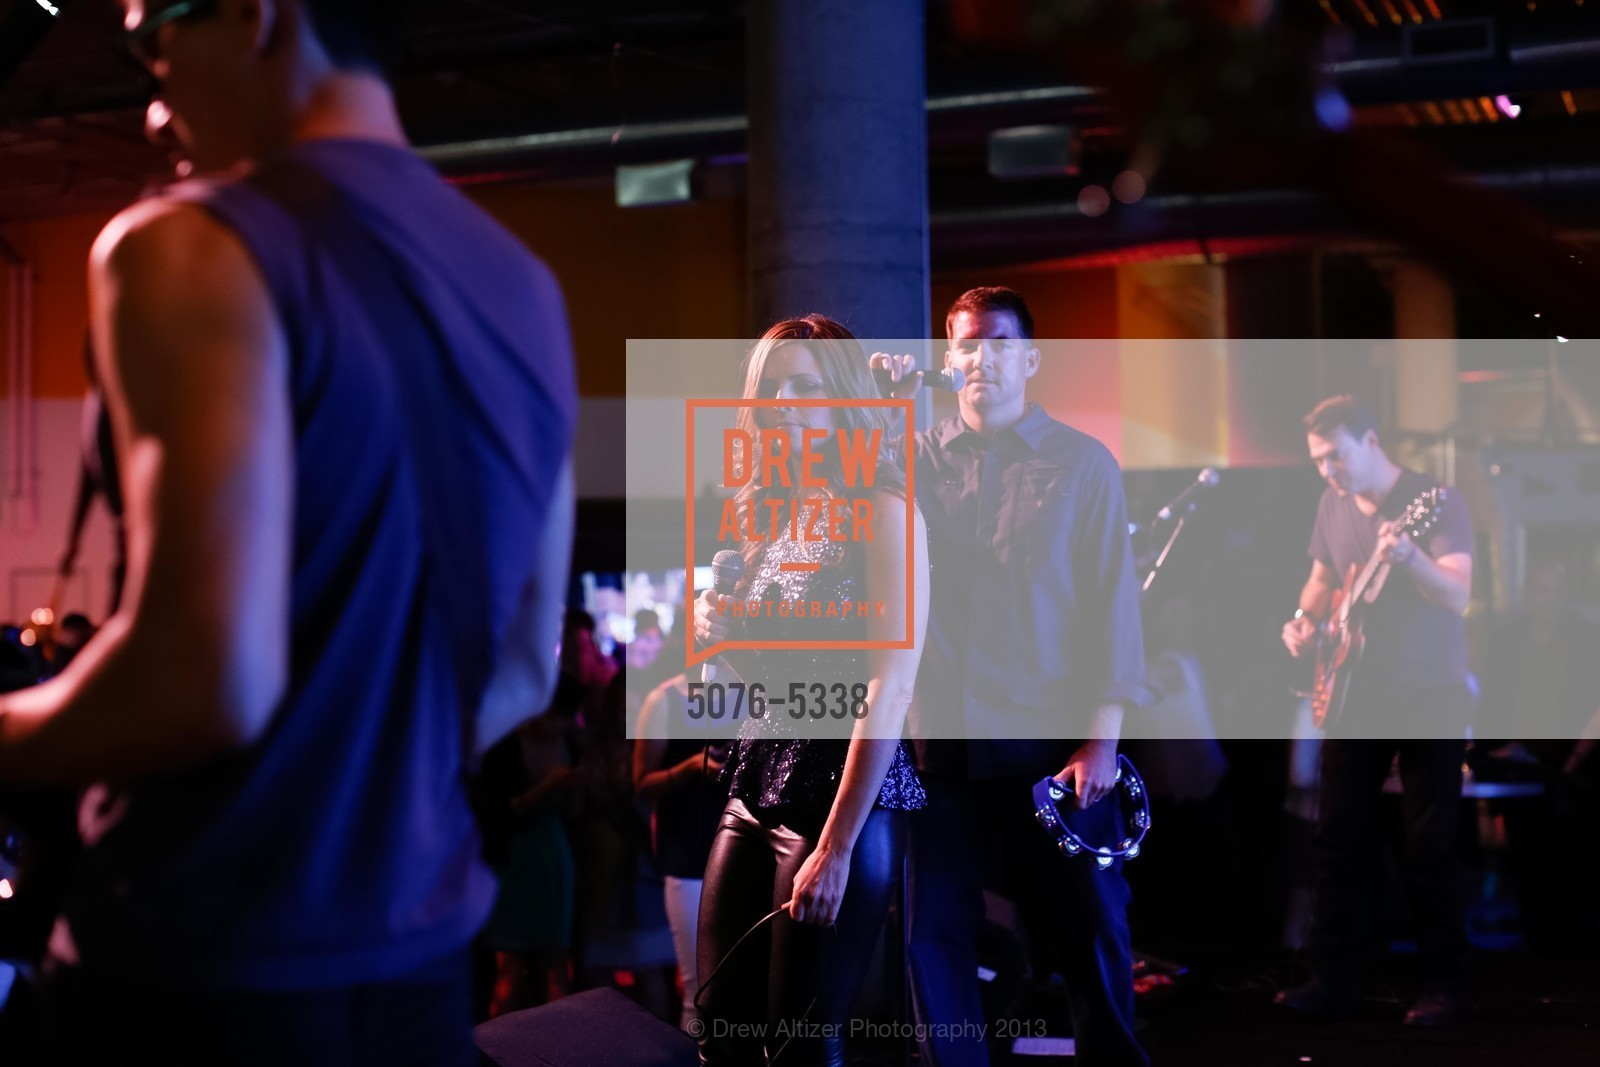 Performance By Coverflow, Photo #5076-5338